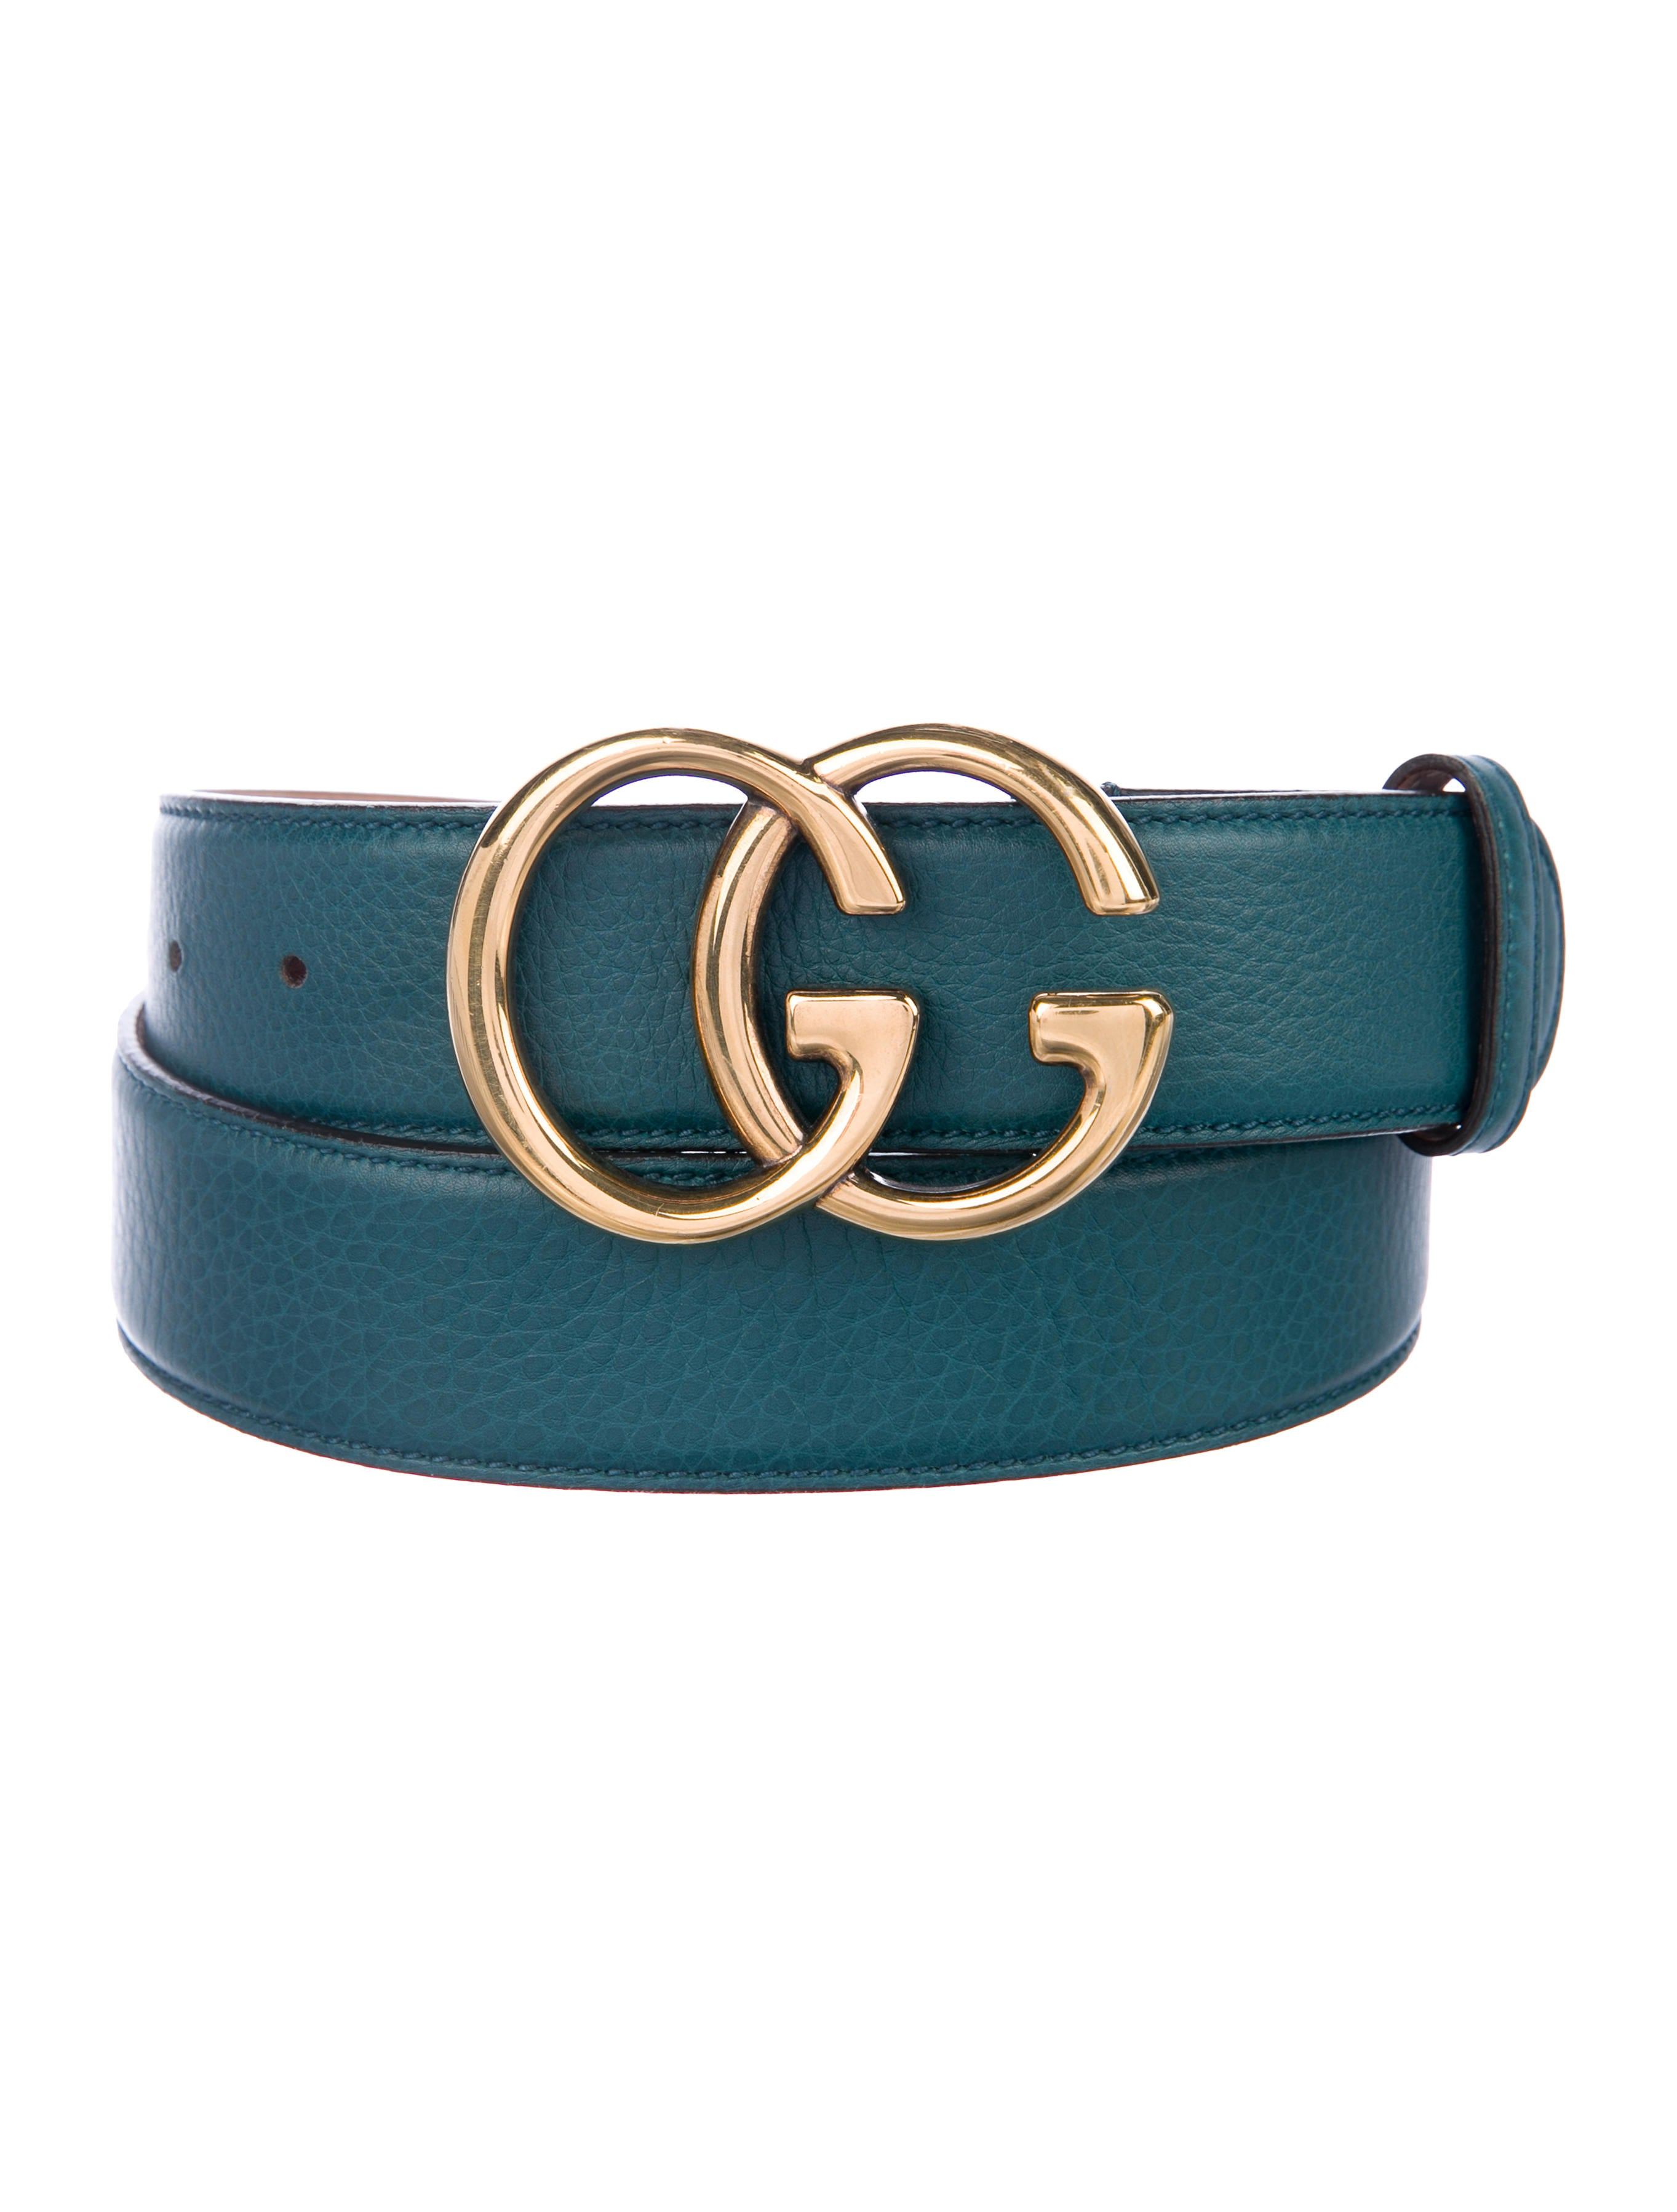 7fa9c6ef403 Gucci GG Marmont Leather Belt - Accessories - GUC277581